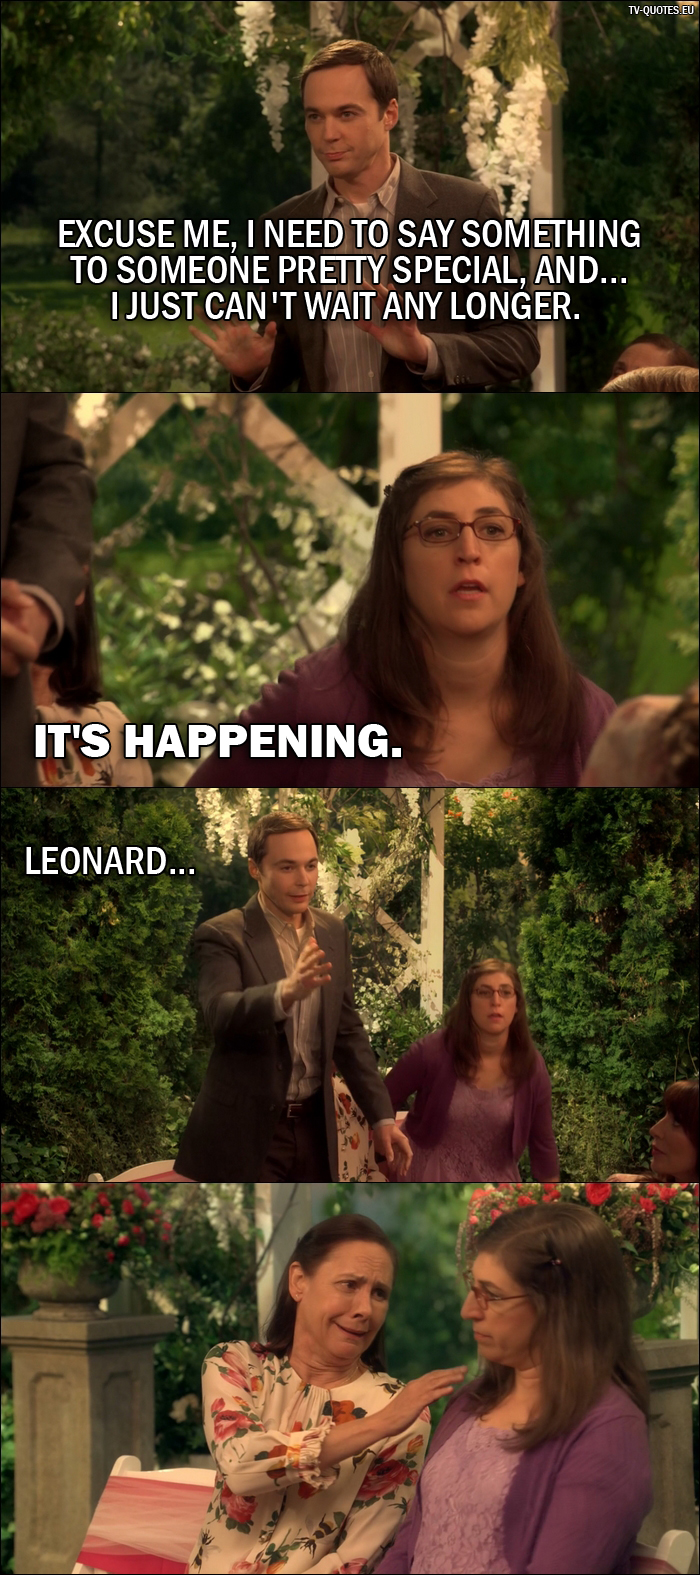 18 Best The Big Bang Theory Quotes from The Conjugal Conjecture (10x01) - Sheldon Cooper: Excuse me, I need to say something to someone pretty special, and... I just can't wait any longer. Amy Farrah Fowler: It's happening. Sheldon Cooper: Leonard...